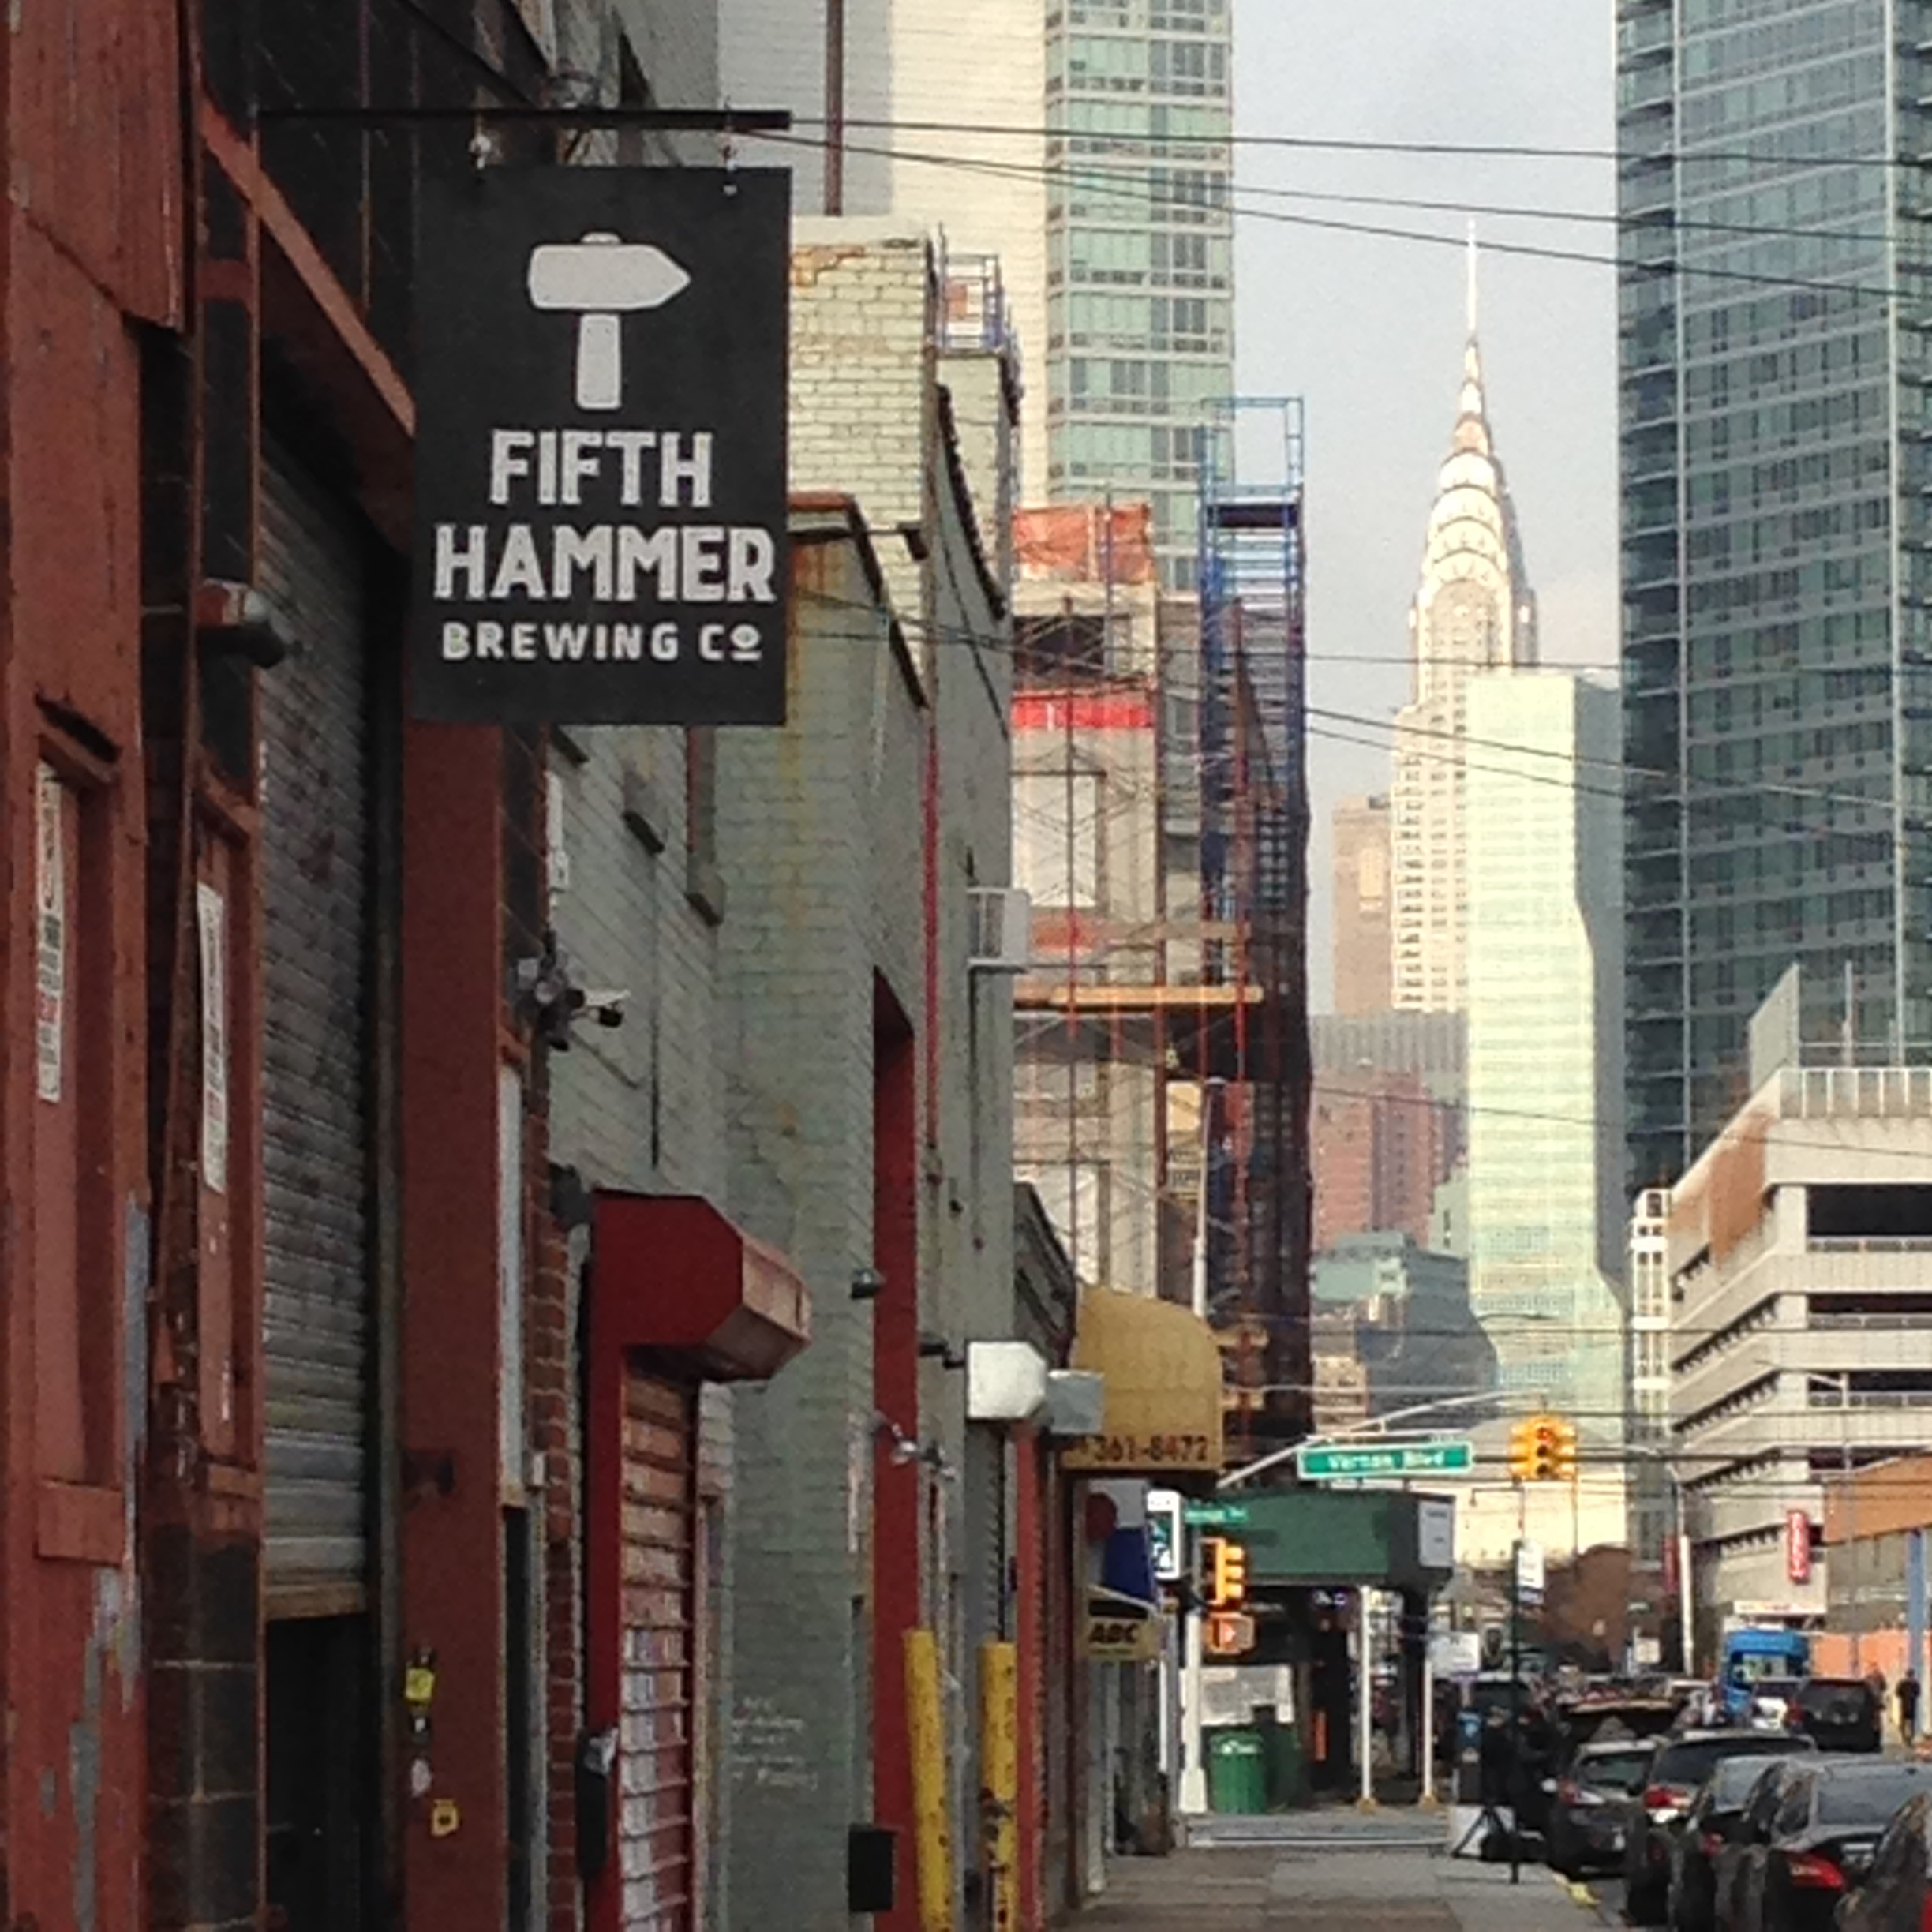 The competition was held at Fifth Hammer in Long Island City.